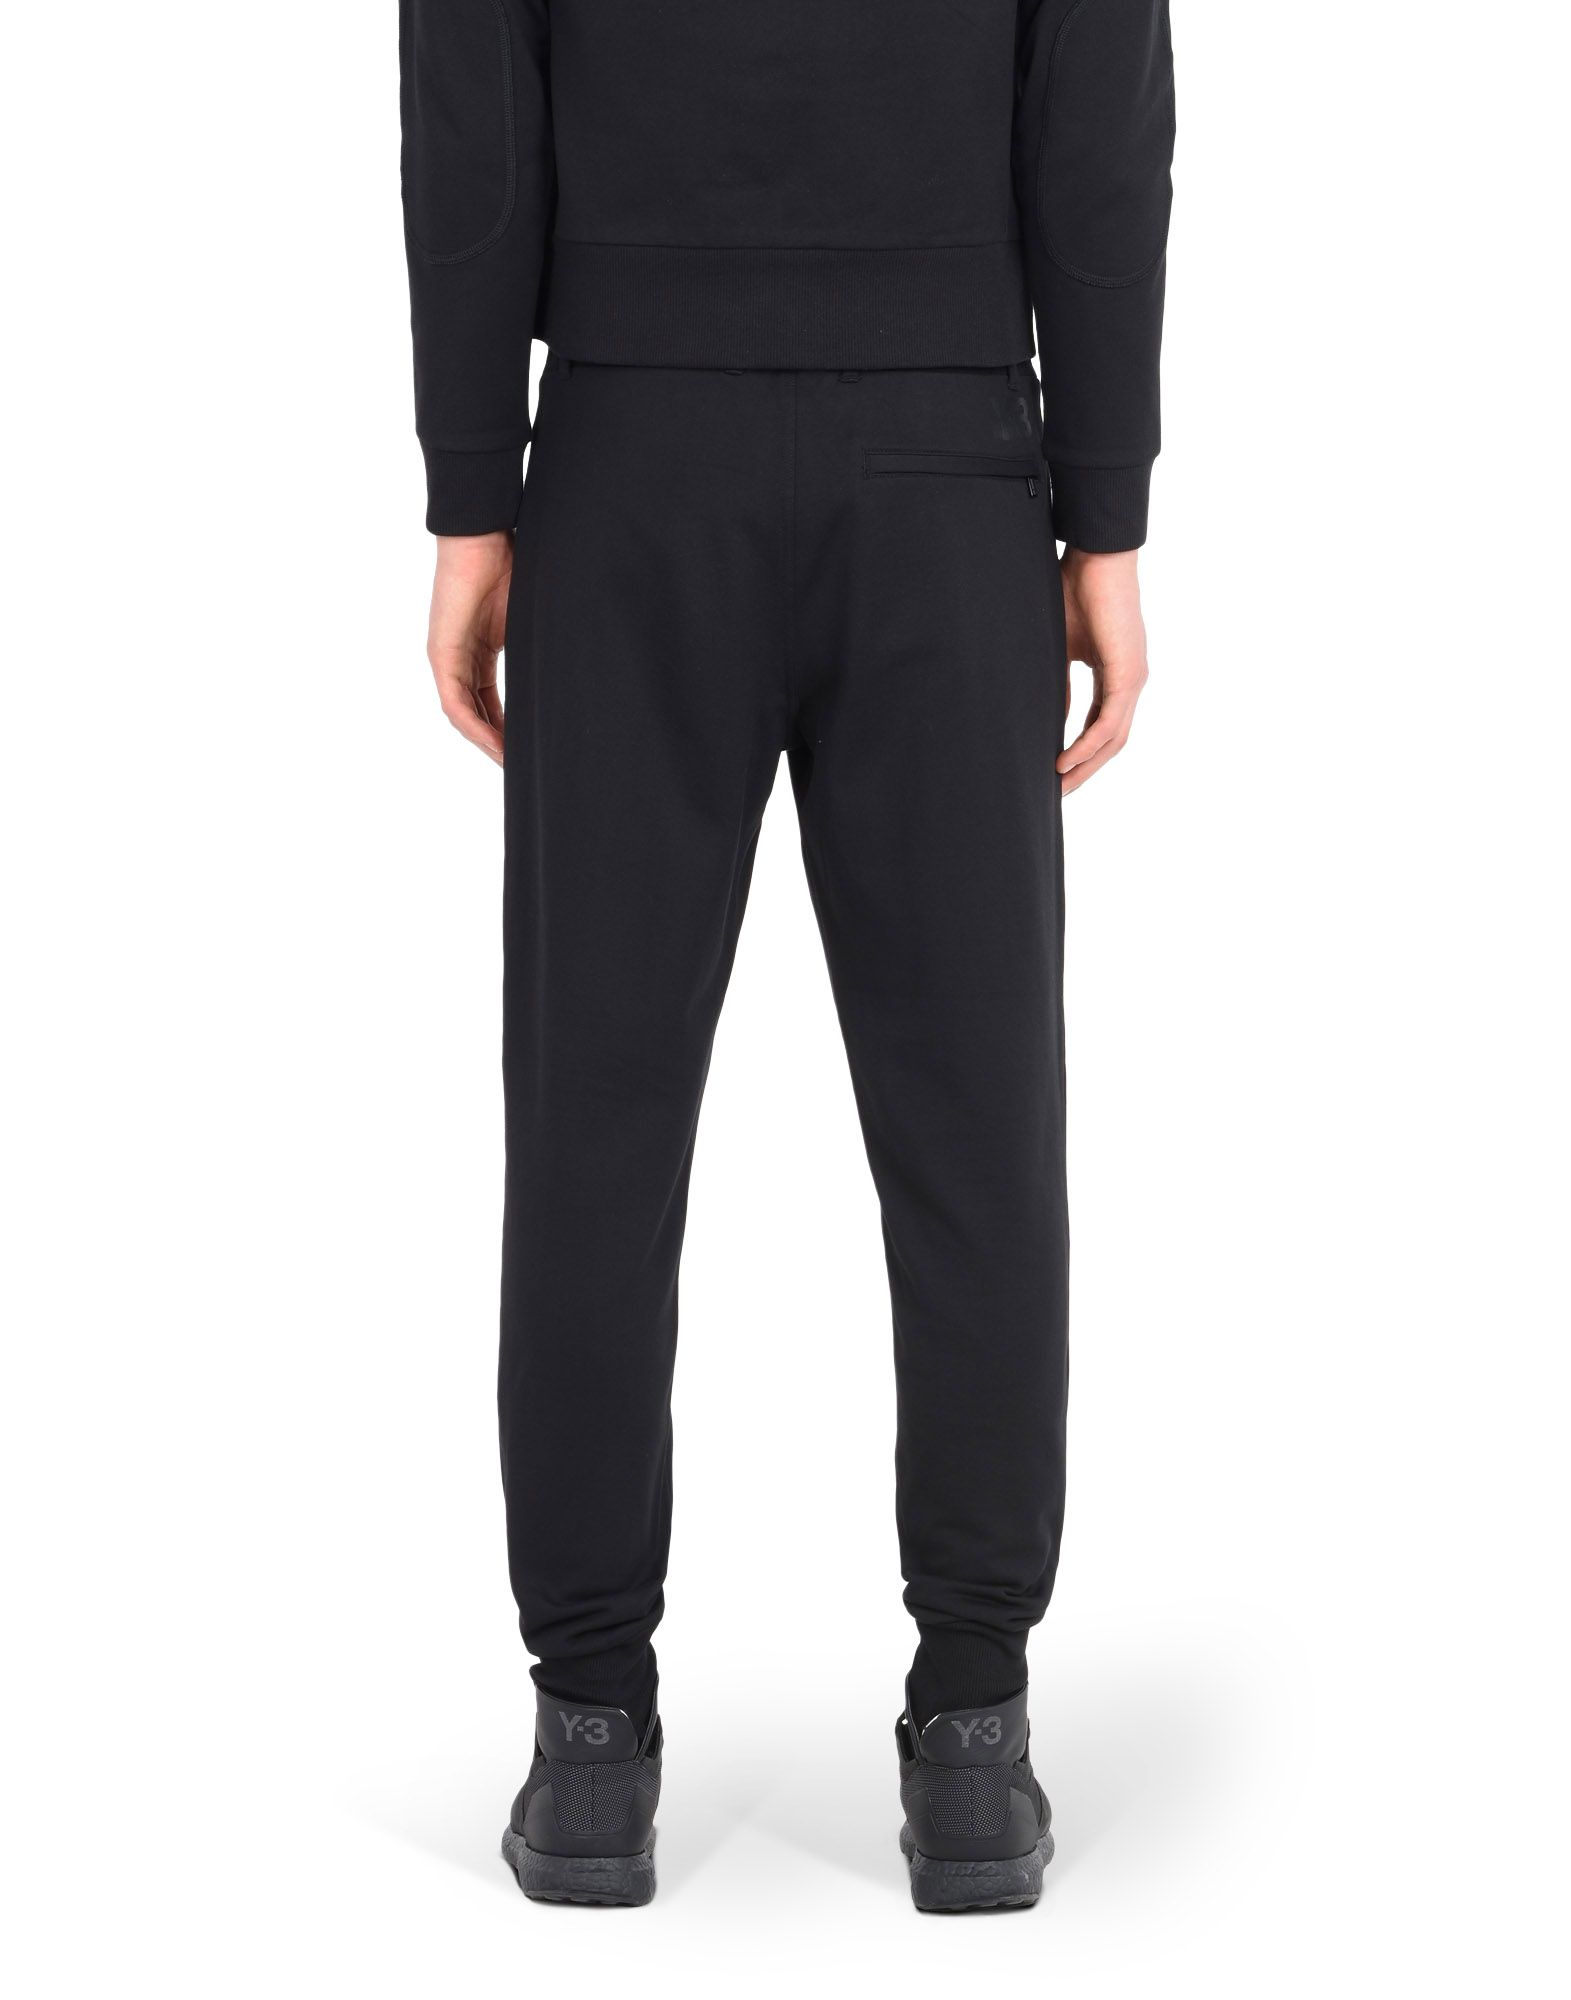 ... Y-3 Y-3 CLASSIC FT CUFF PANT Sweatpants Man e ... 78501a68bef3